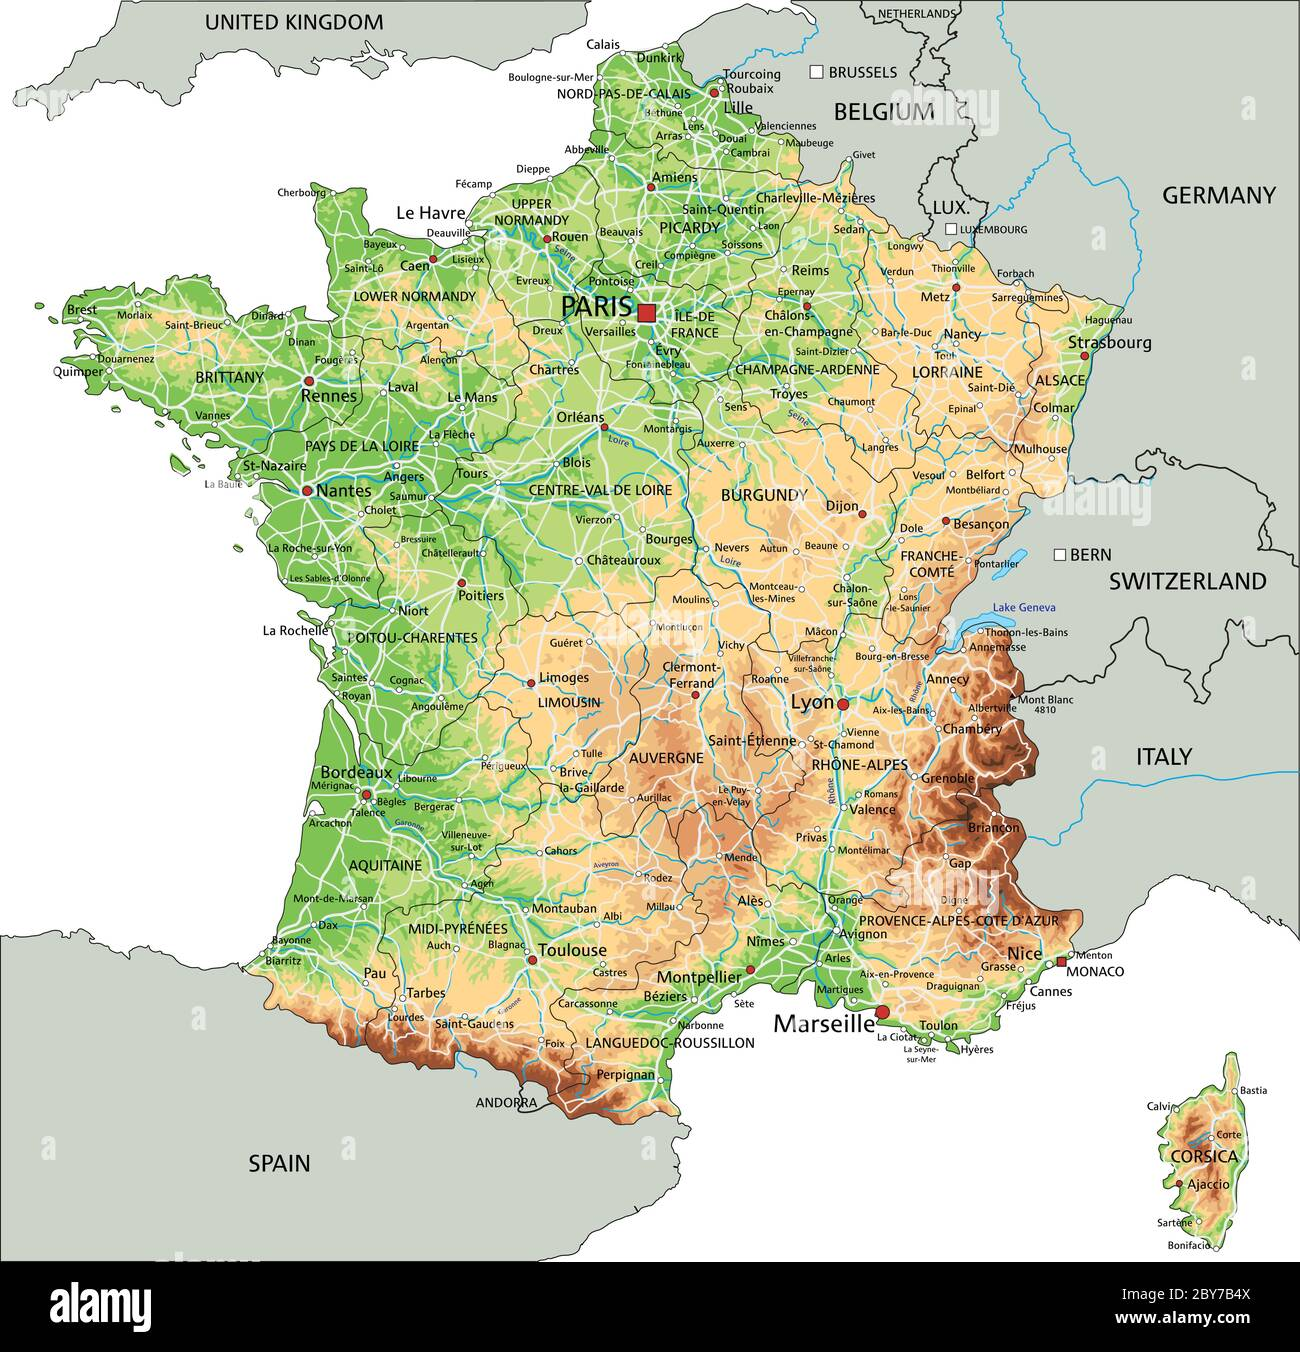 High Detailed France Physical Map With Labeling Stock Vector Image Art Alamy